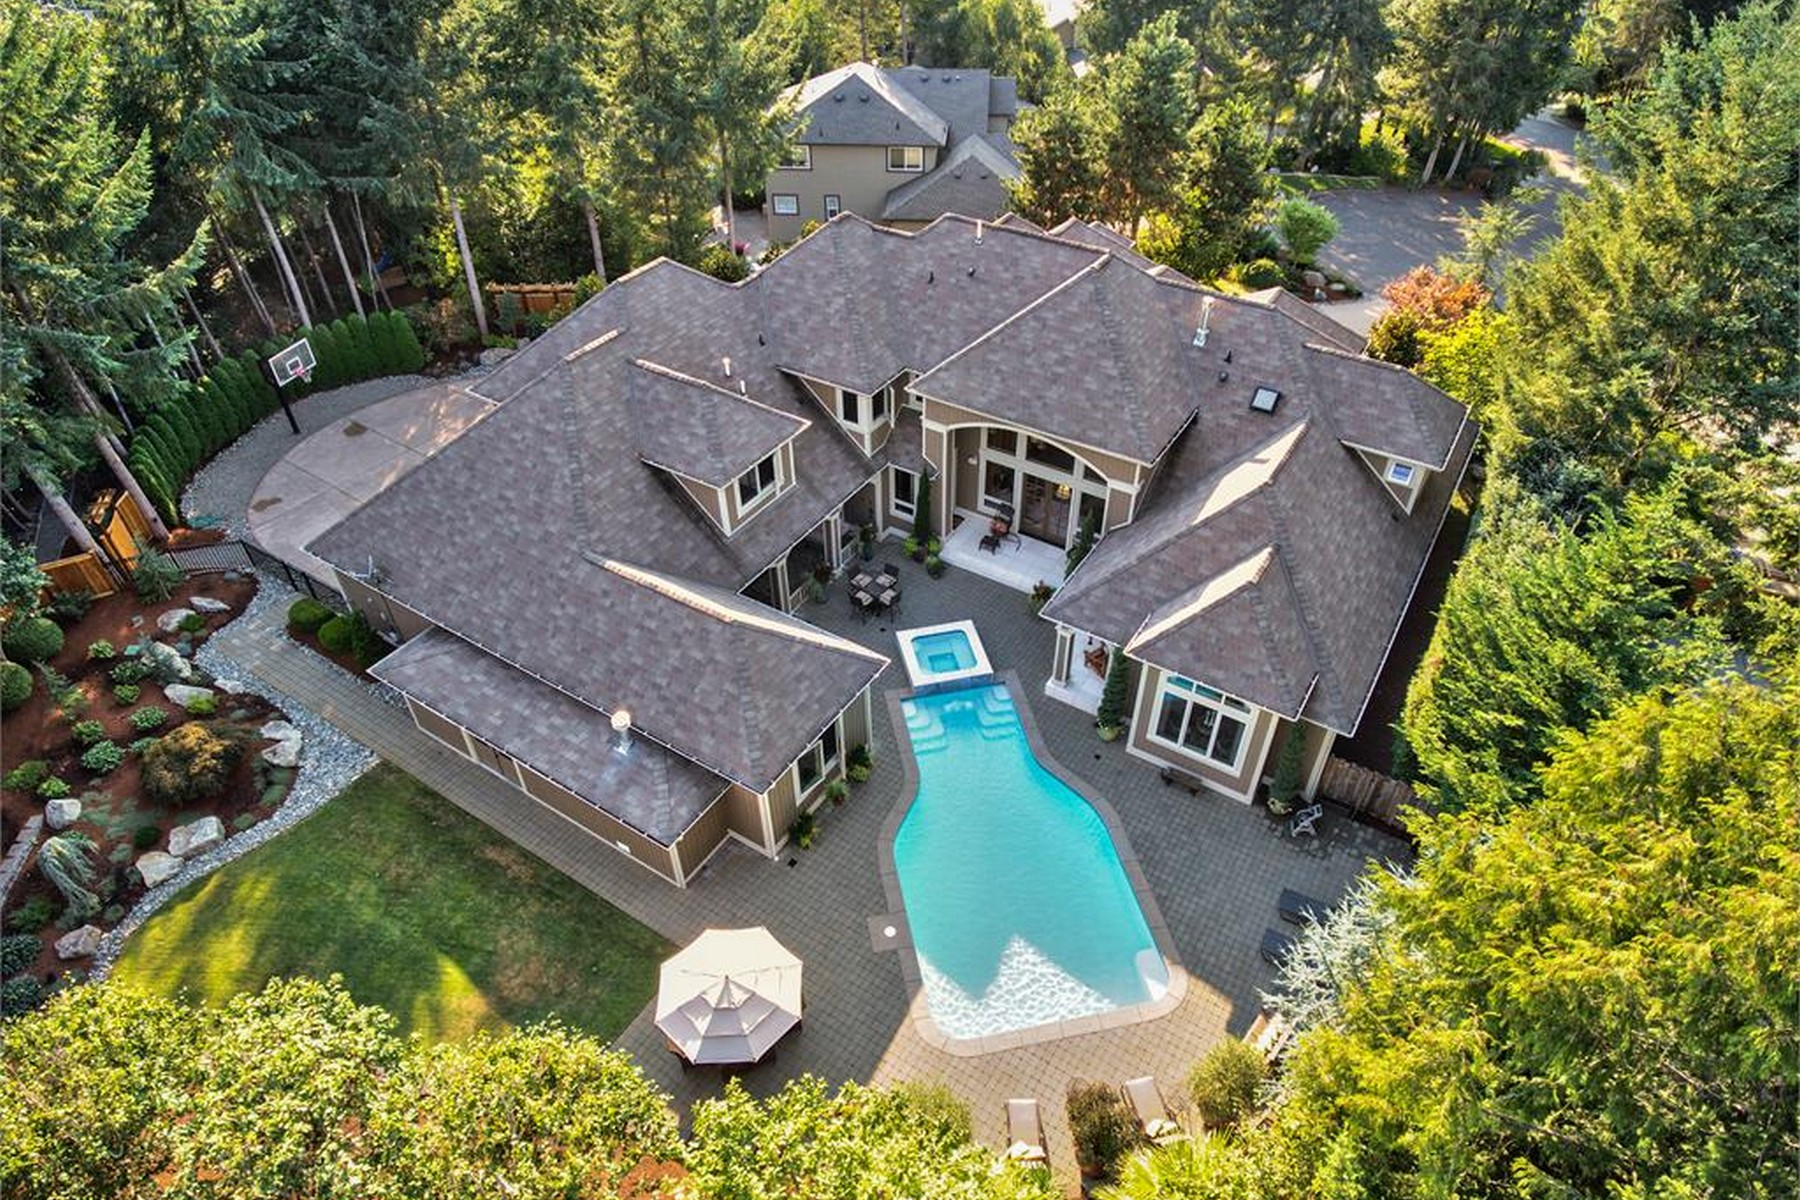 Maison unifamiliale pour l Vente à Stunning Canterwood Estate 5008 Bridlepath Dr. W Gig Harbor, Washington, 98332 États-Unis